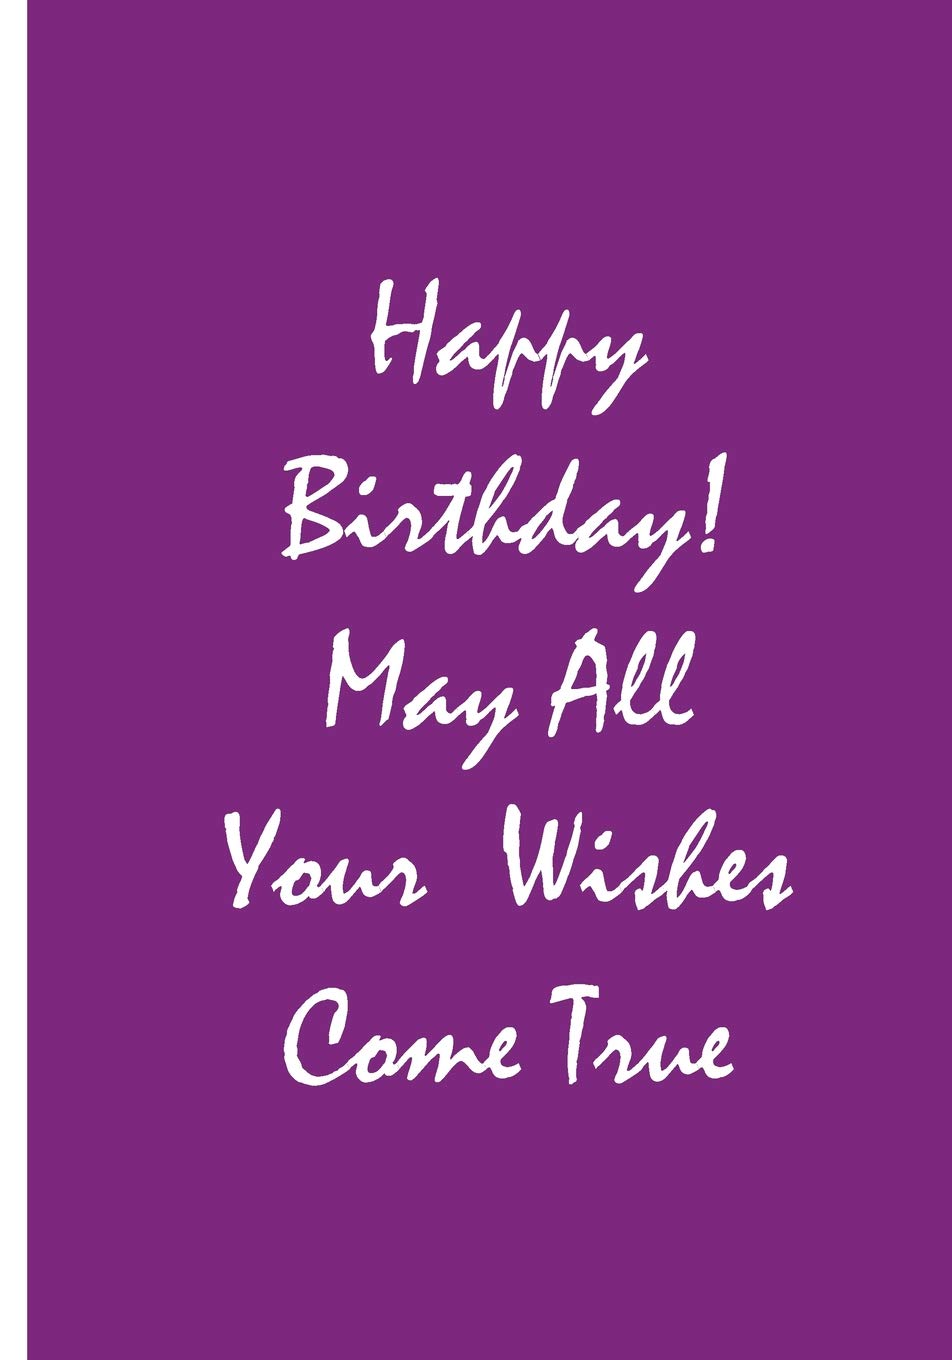 Happy Birthday! May All Your Wishes Come True - Purple Notebook ...